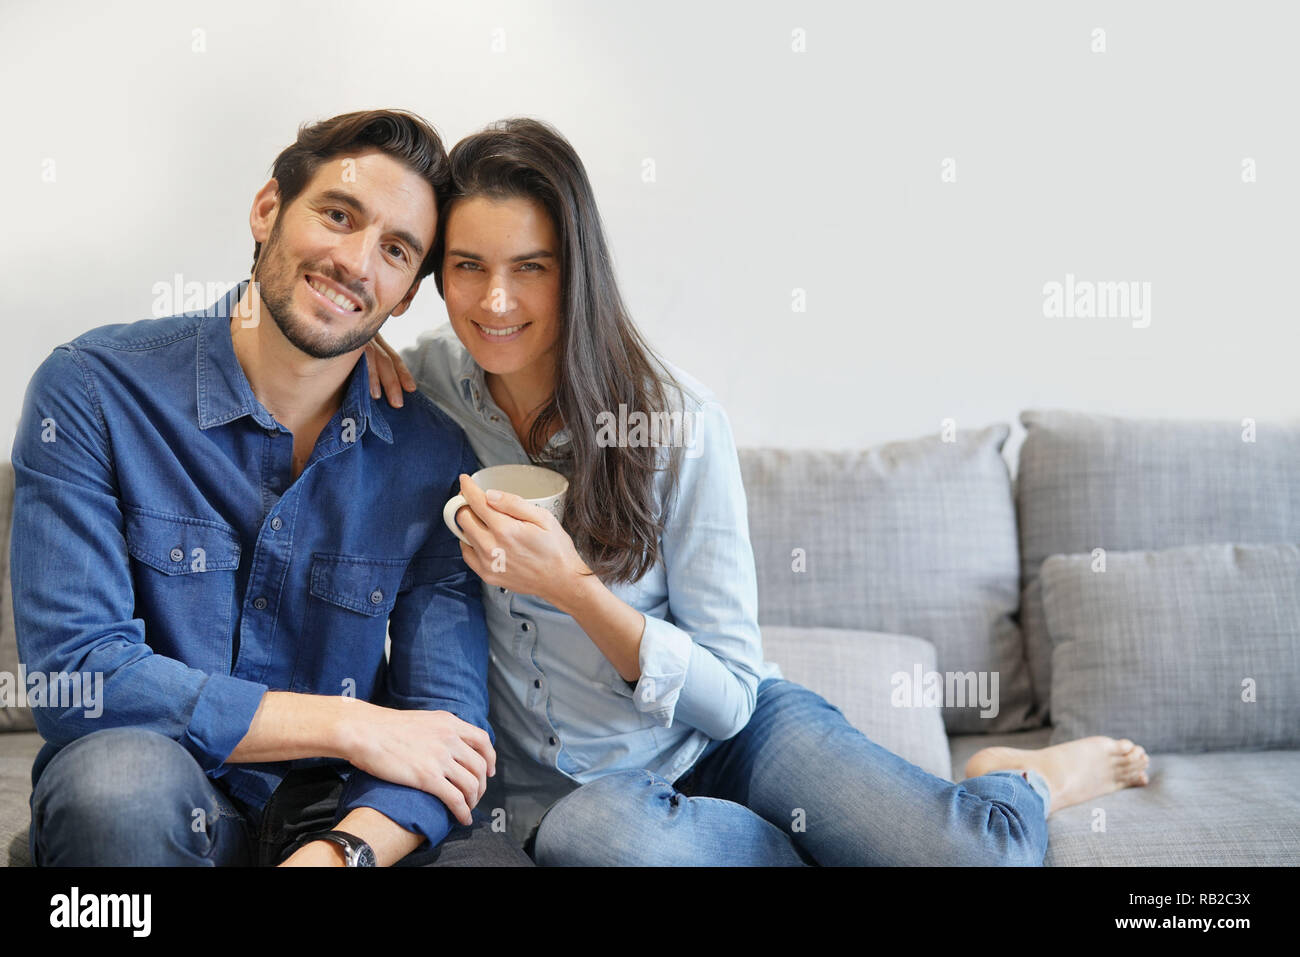 Isolated gorgeous smiling couple in denim on comfy couch - Stock Image